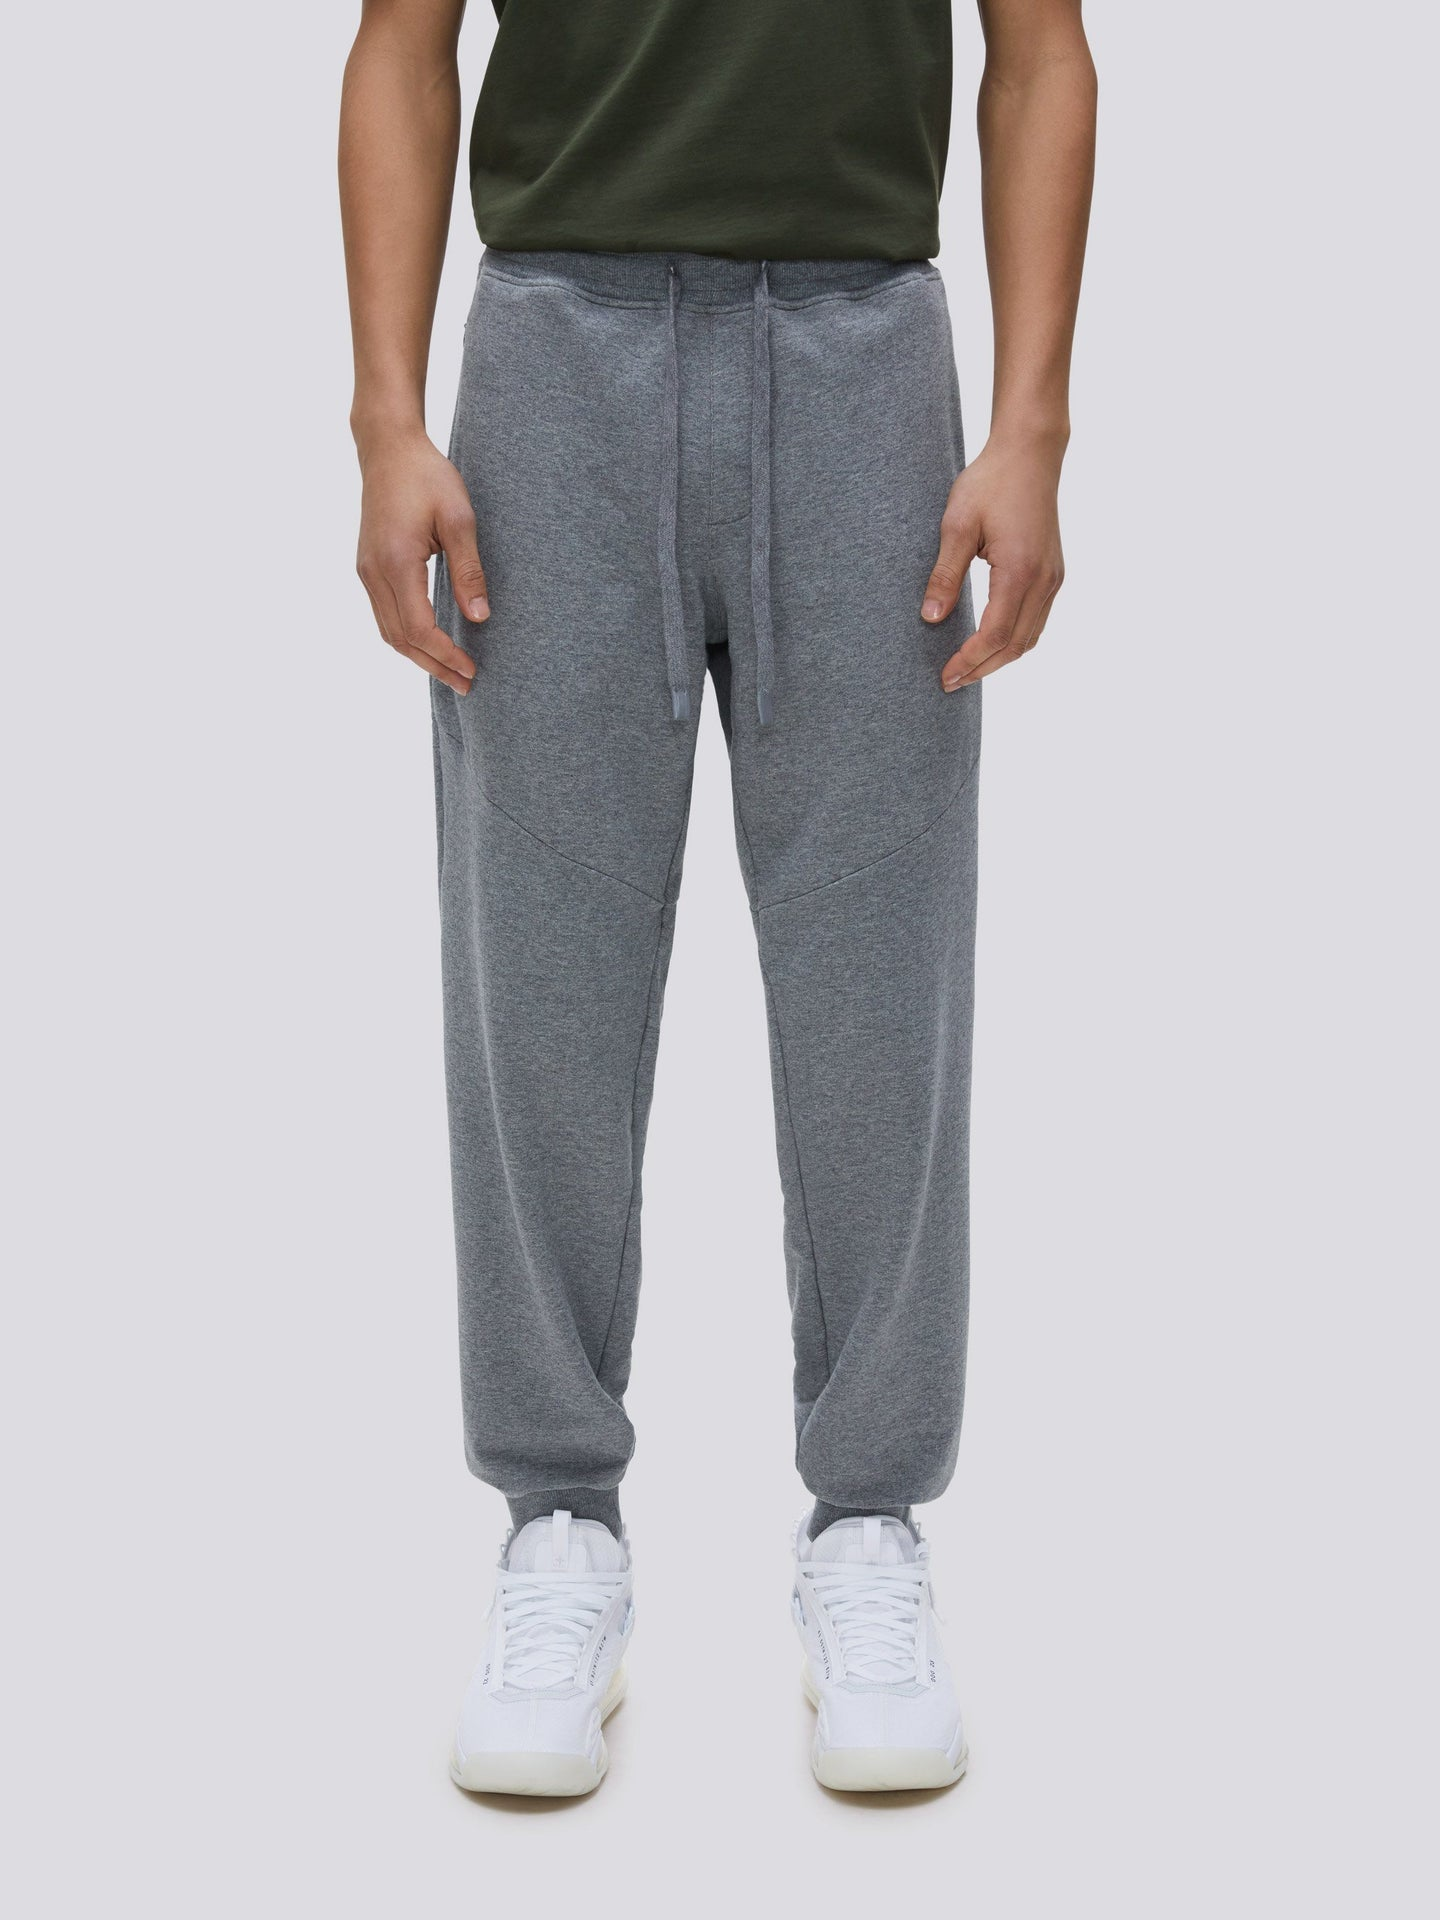 CLASSIC DRAWSTRING PANTS BOTTOM Alpha Industries, Inc. MEDIUM CHARCOAL HEATHER 2XL